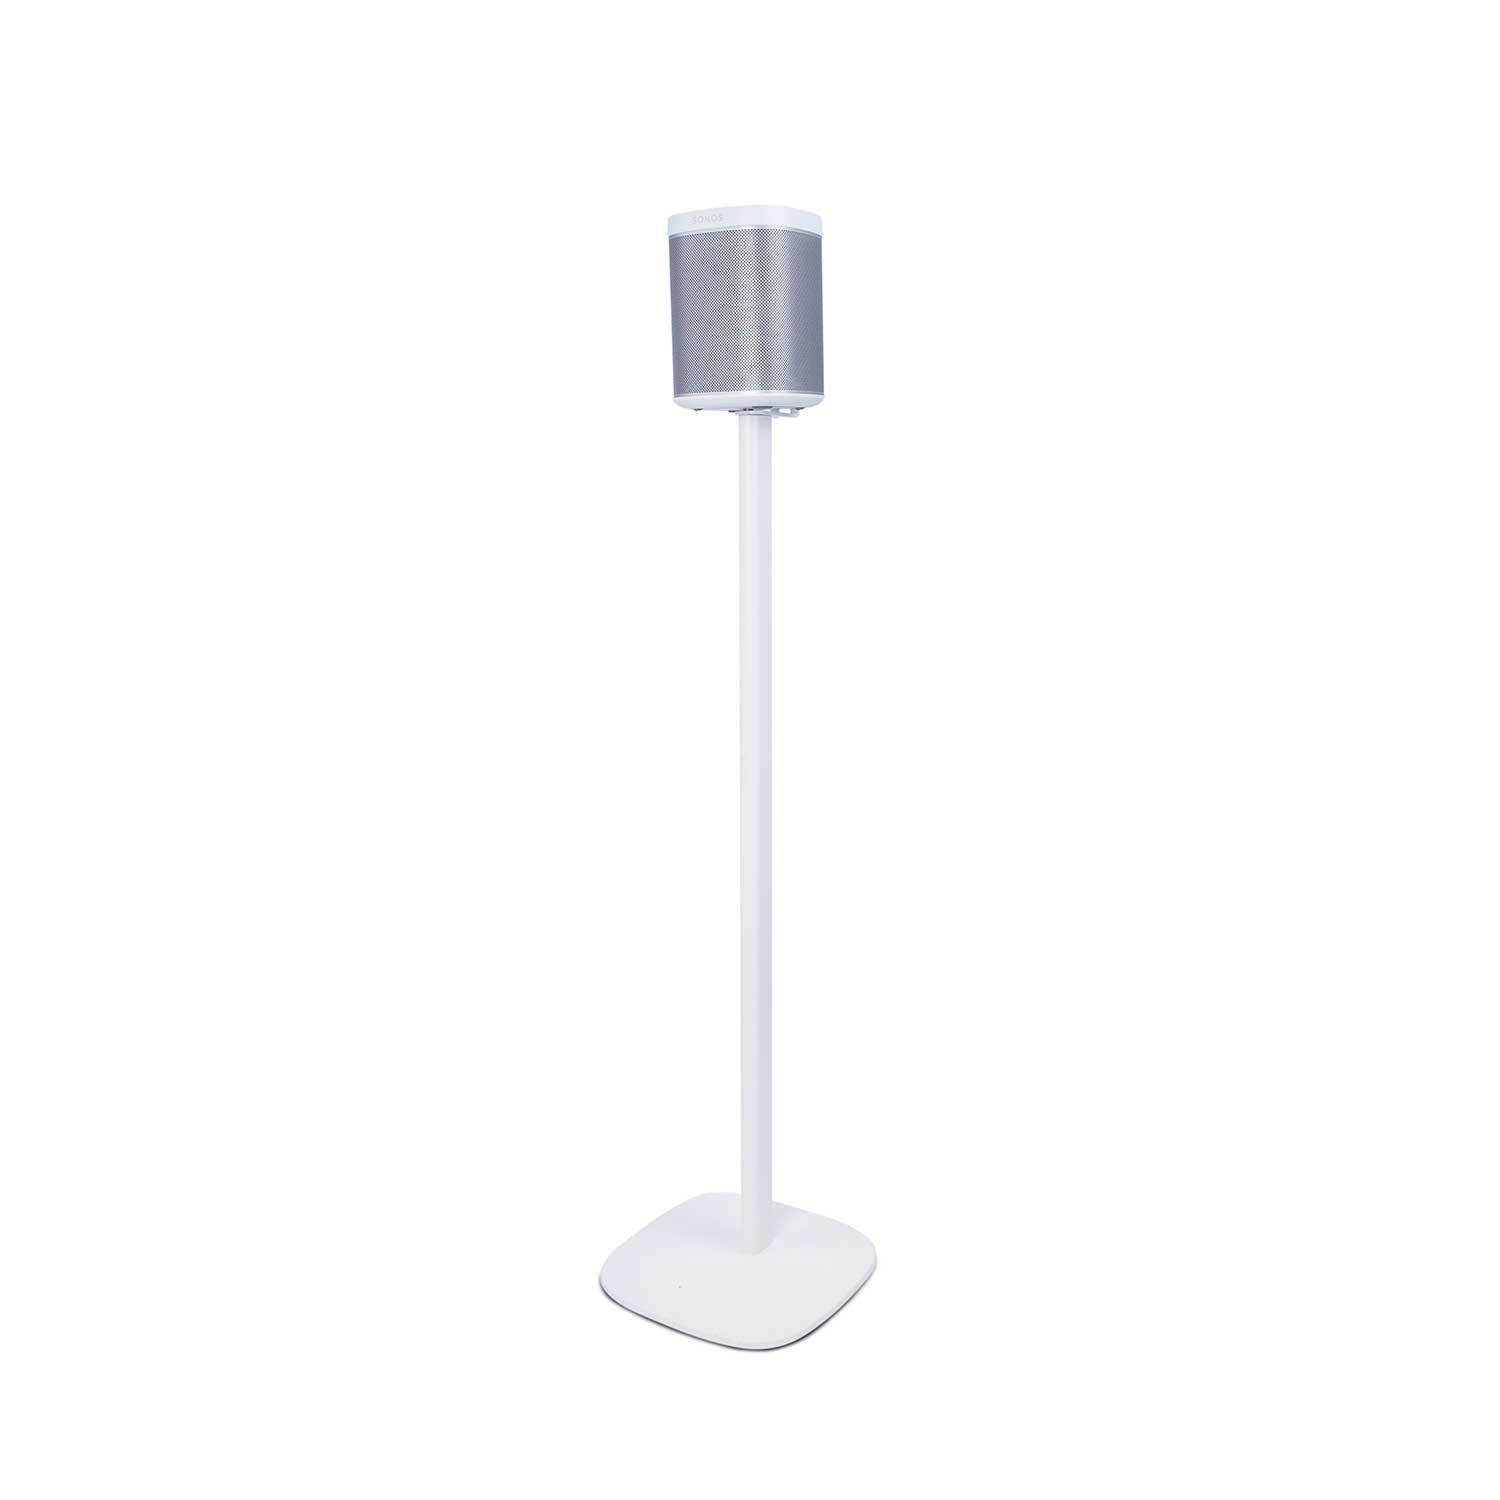 Vebos floor stand Sonos Play 1 white